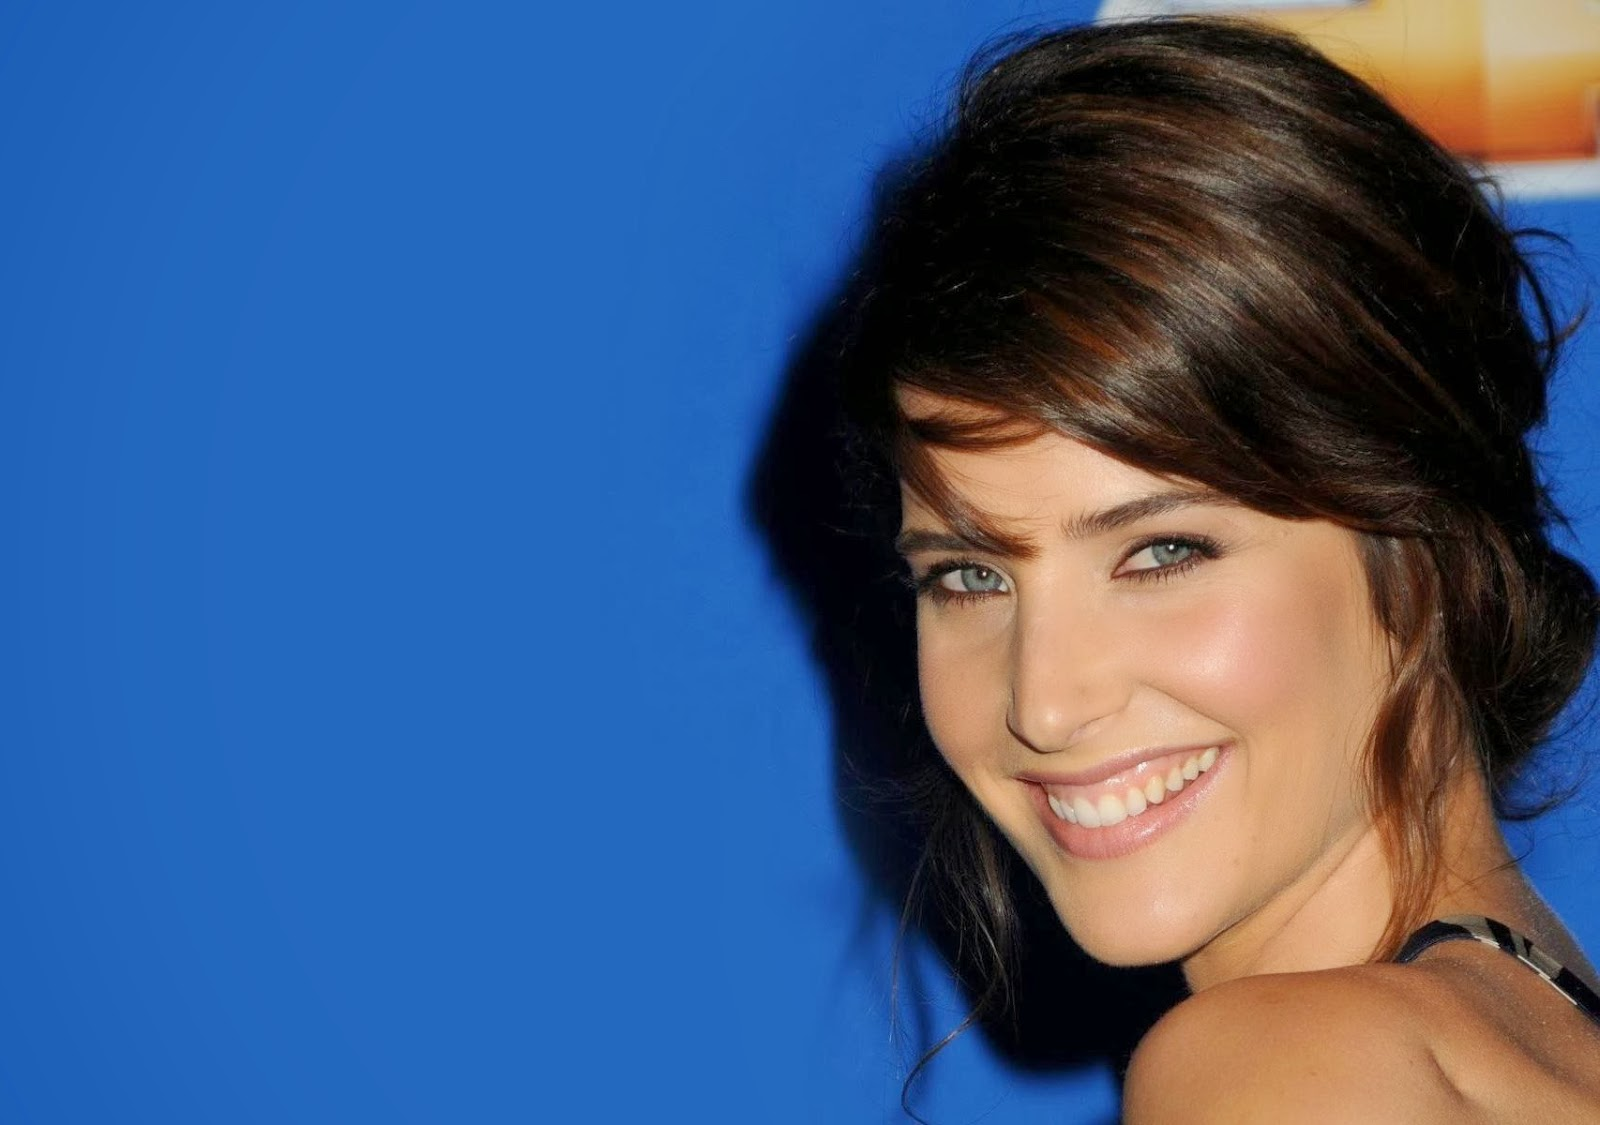 Cobie Smulders HD Wallpaper Beautiful Every Wallpaper 1600x1125